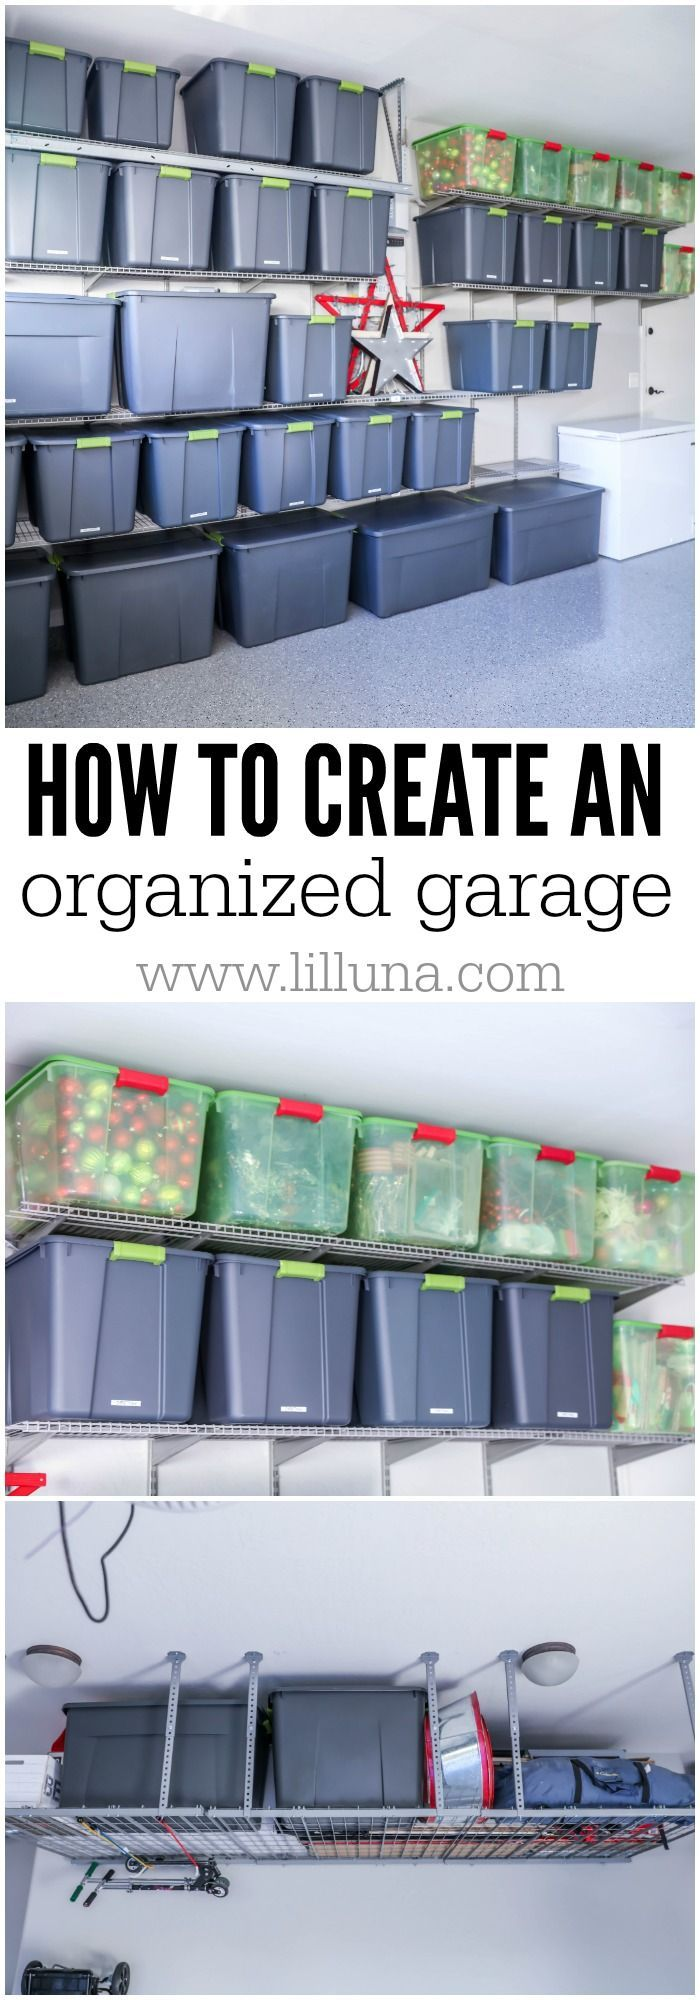 Tips and Tricks for creating an organized garage! It's so nice having order and knowing where everything is in the most neglected area of the house.